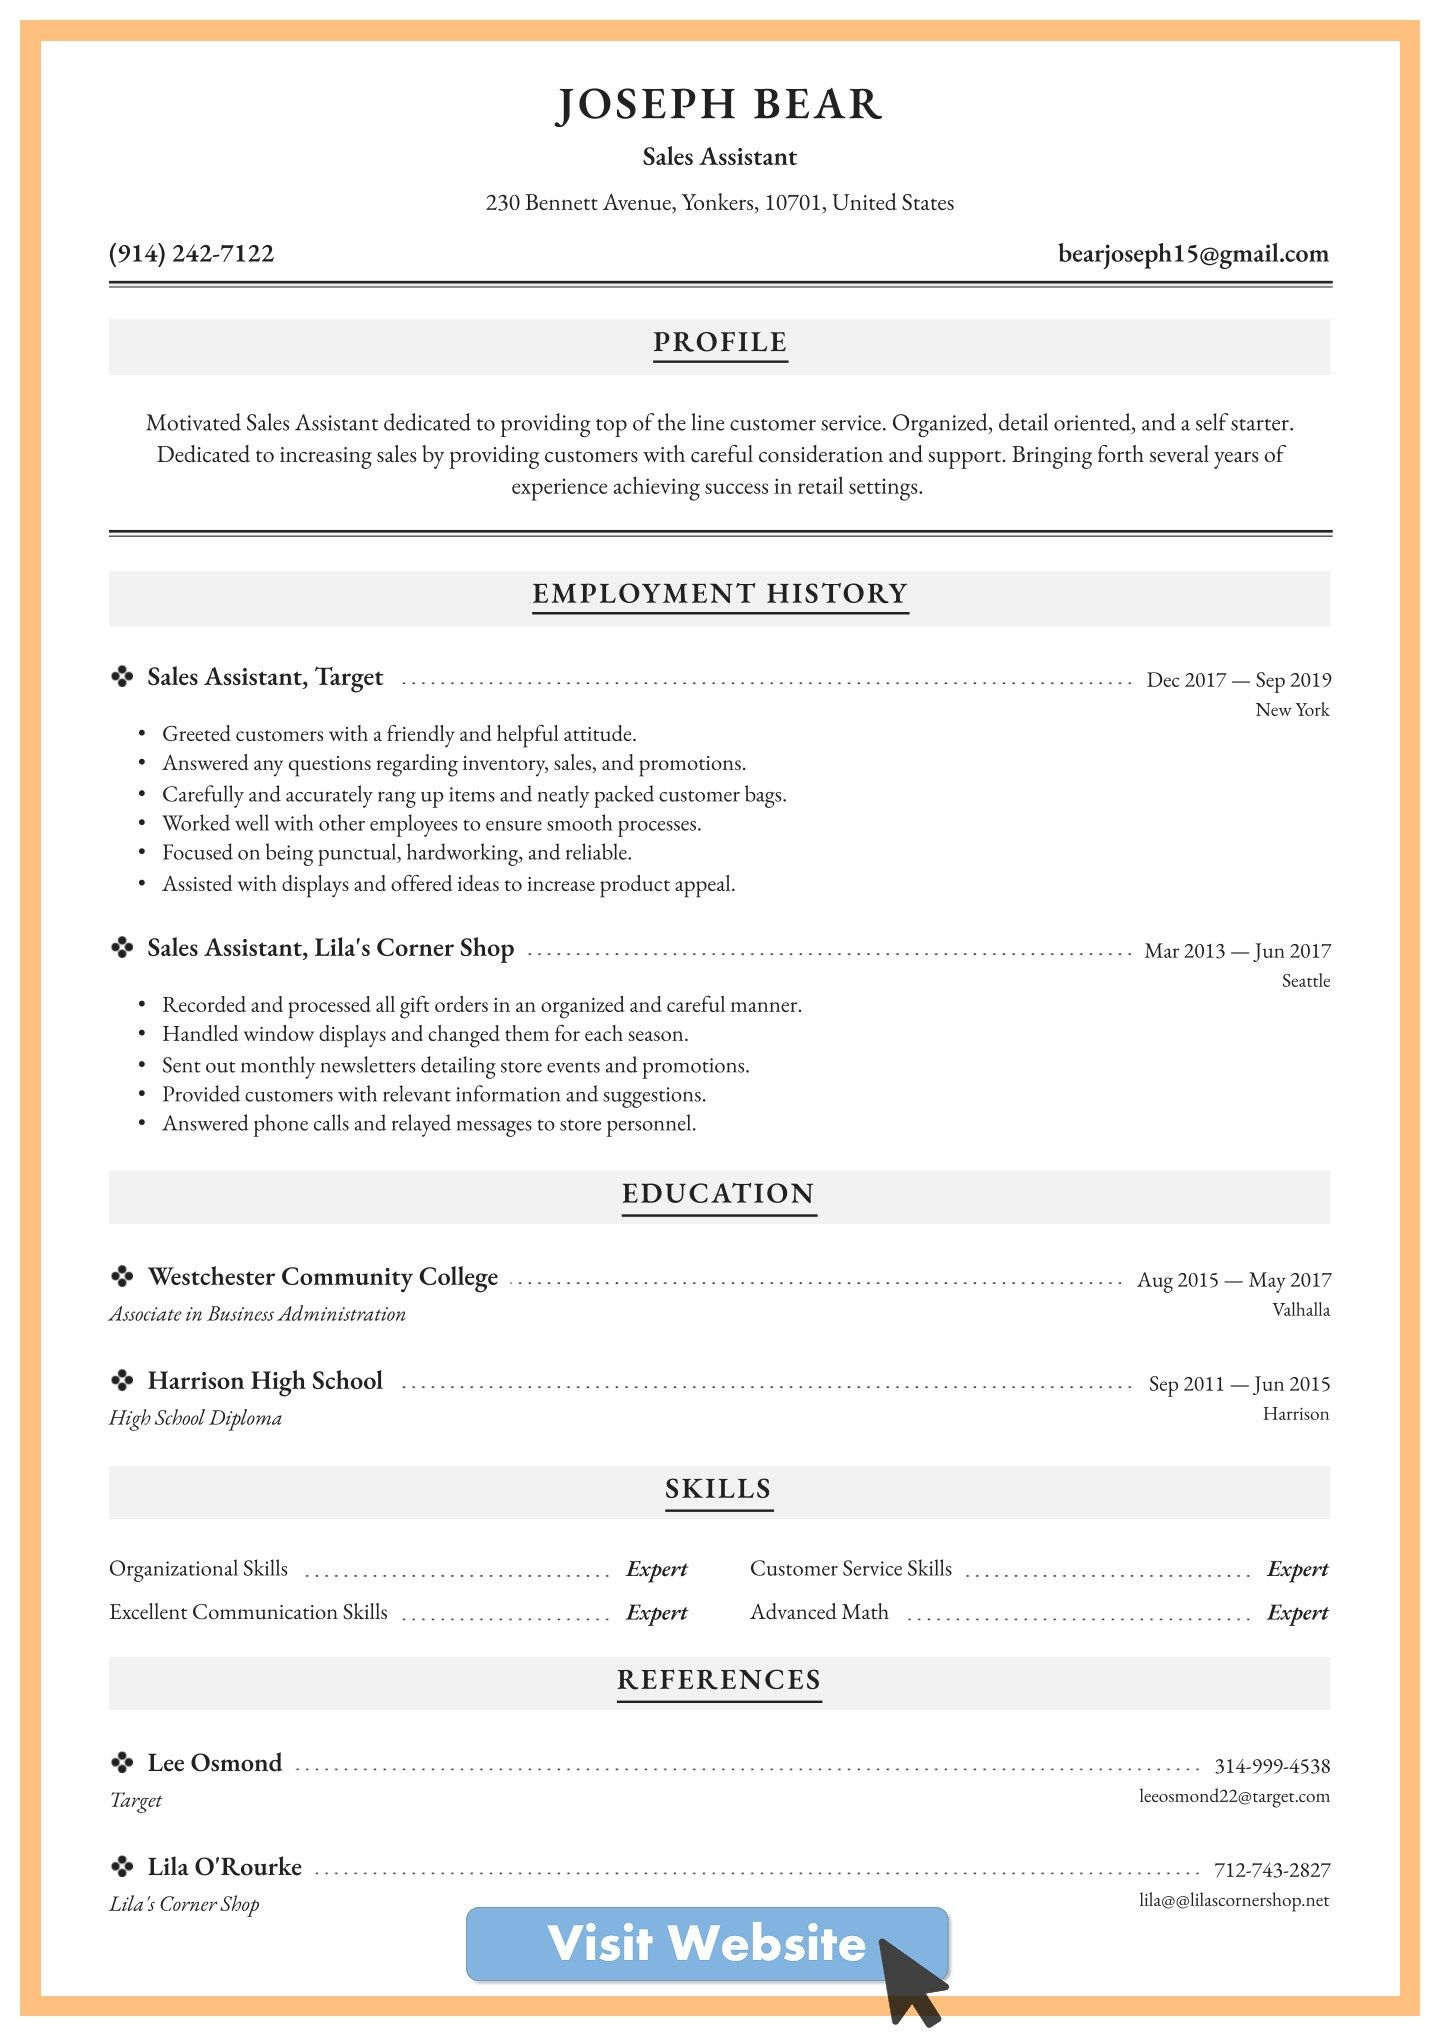 resume template free administrative assistant in 2020